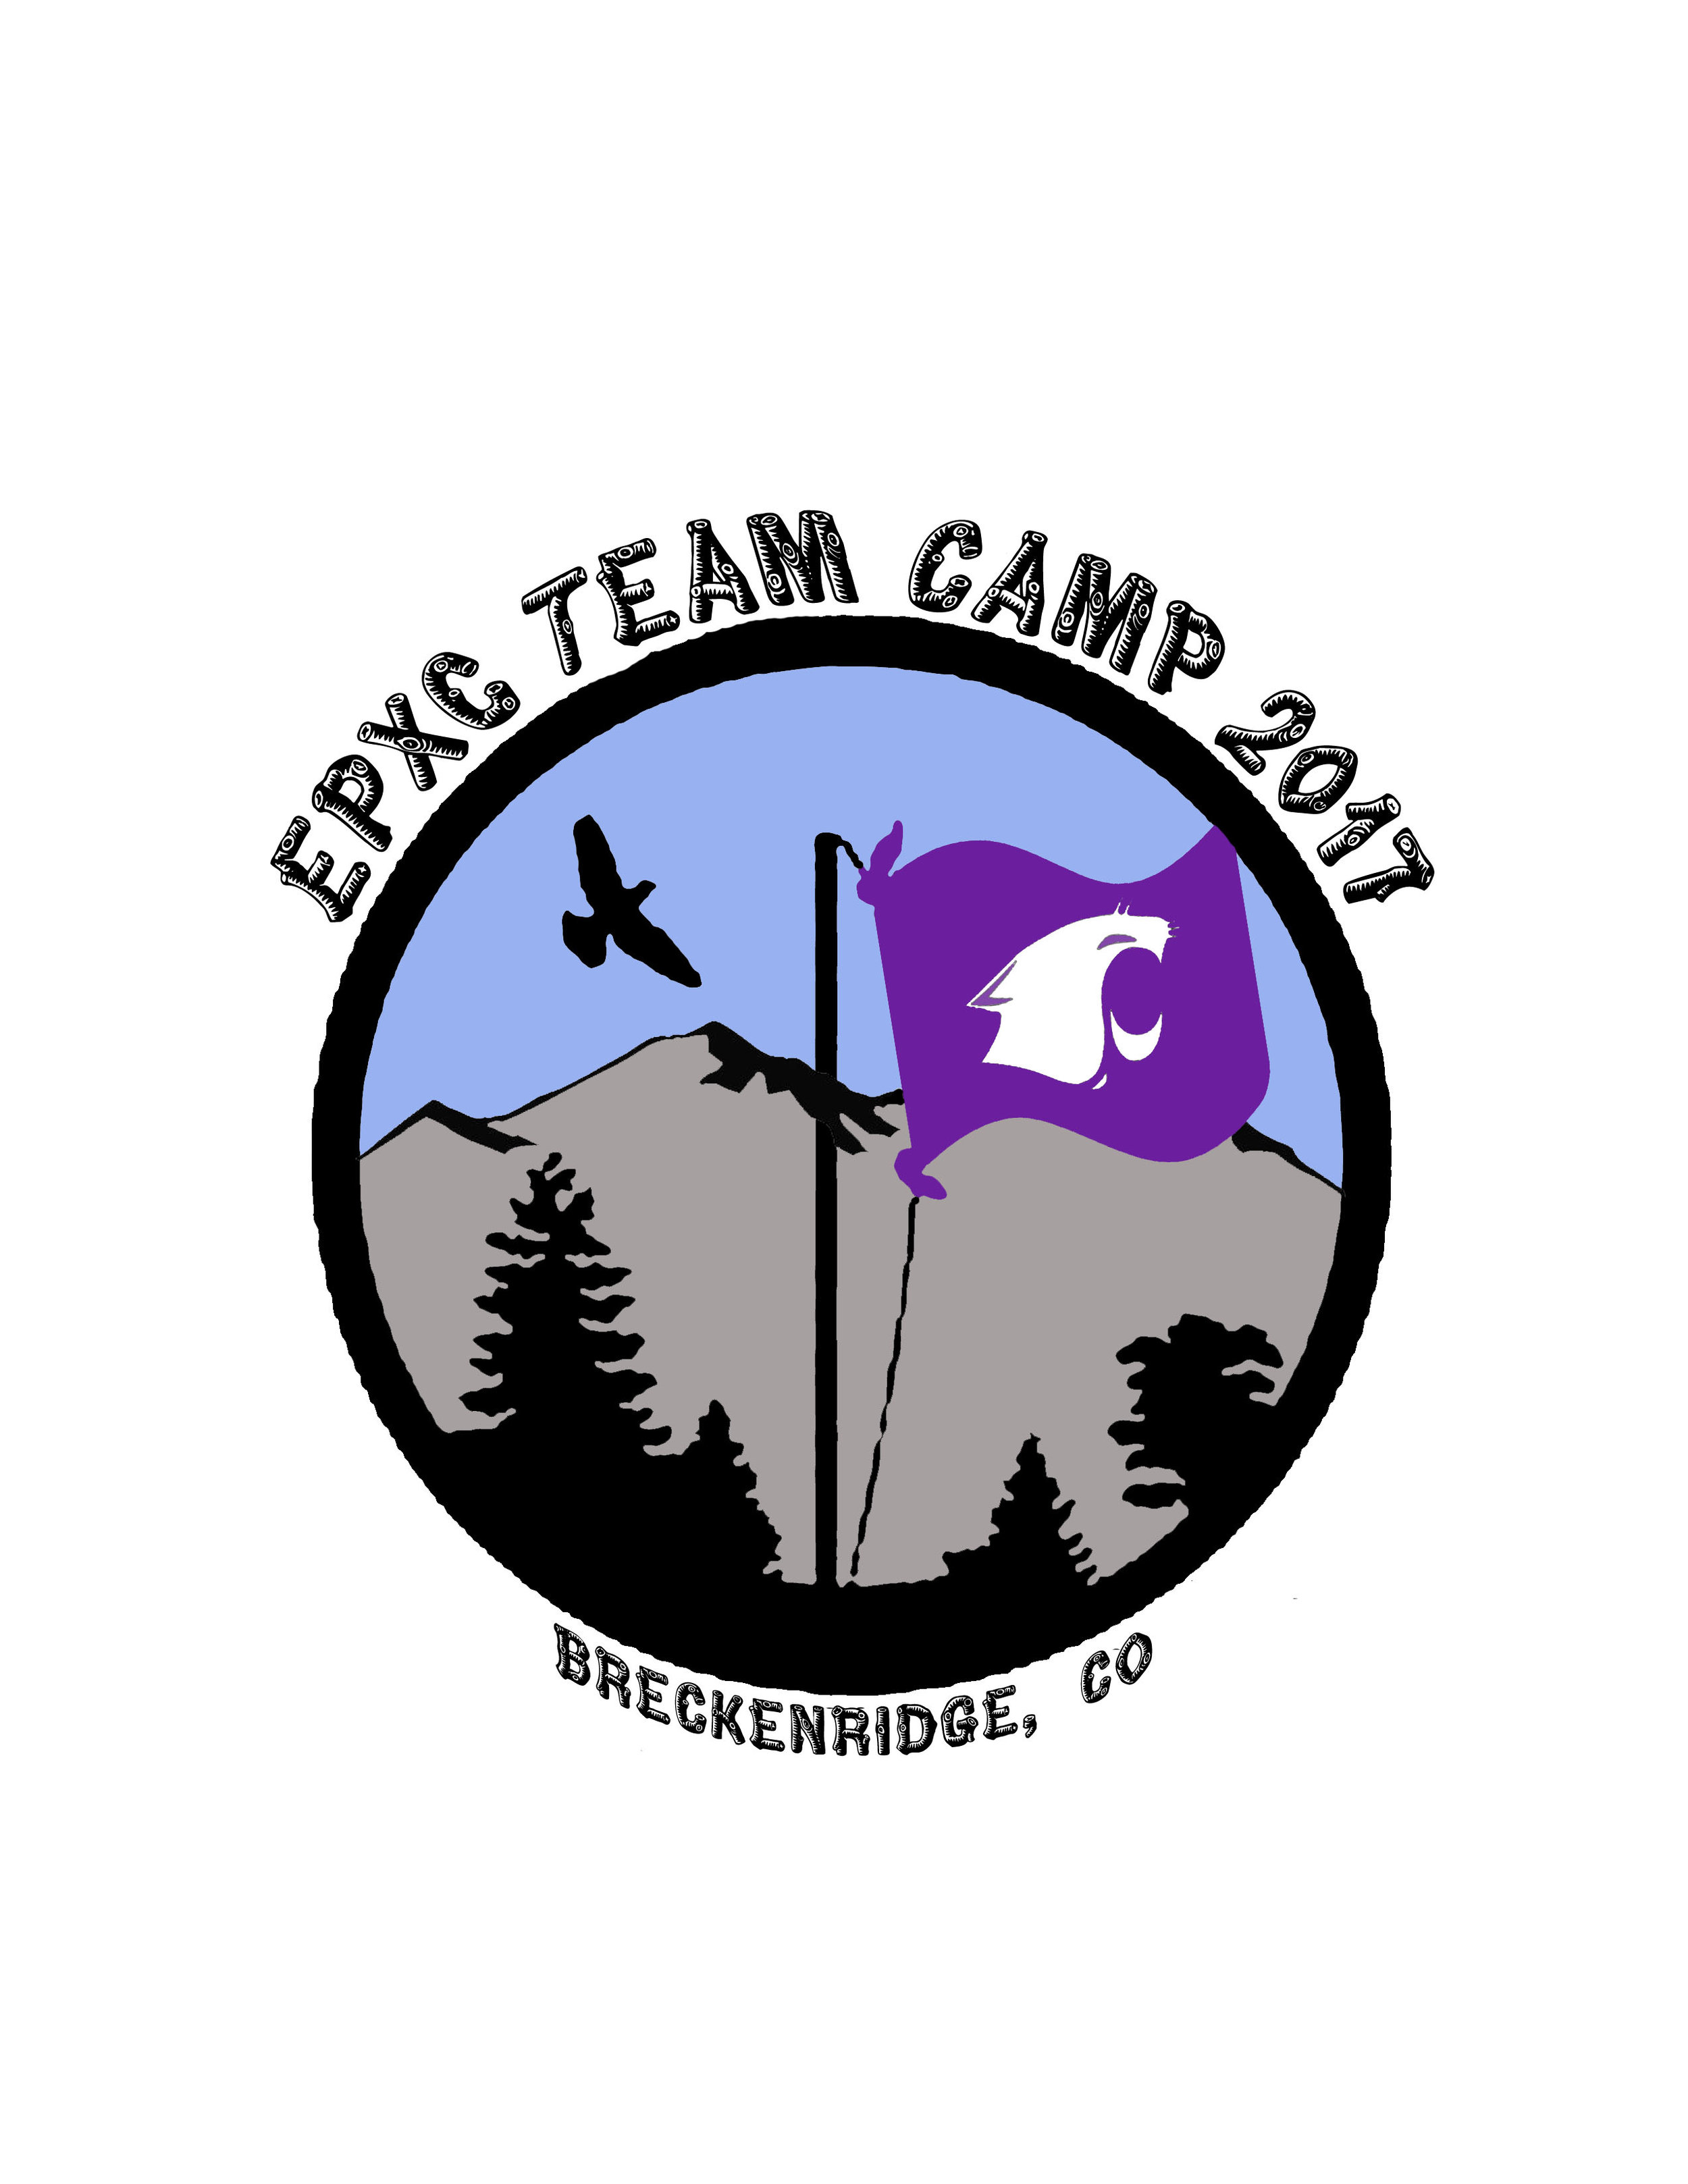 EPXC_camp_logo_color-1.jpg